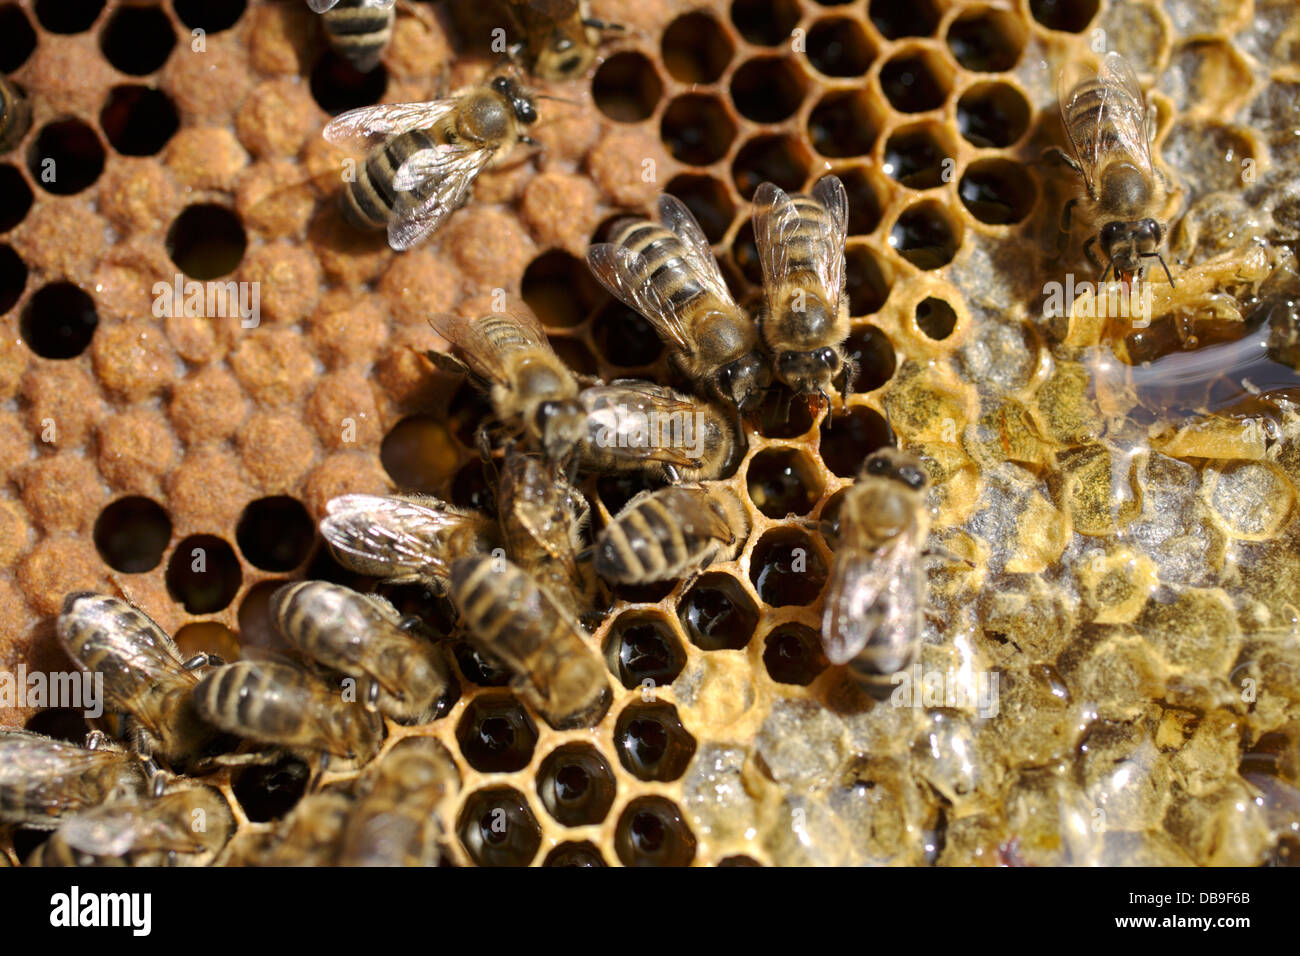 partially capped honeycomb with bees - Stock Image